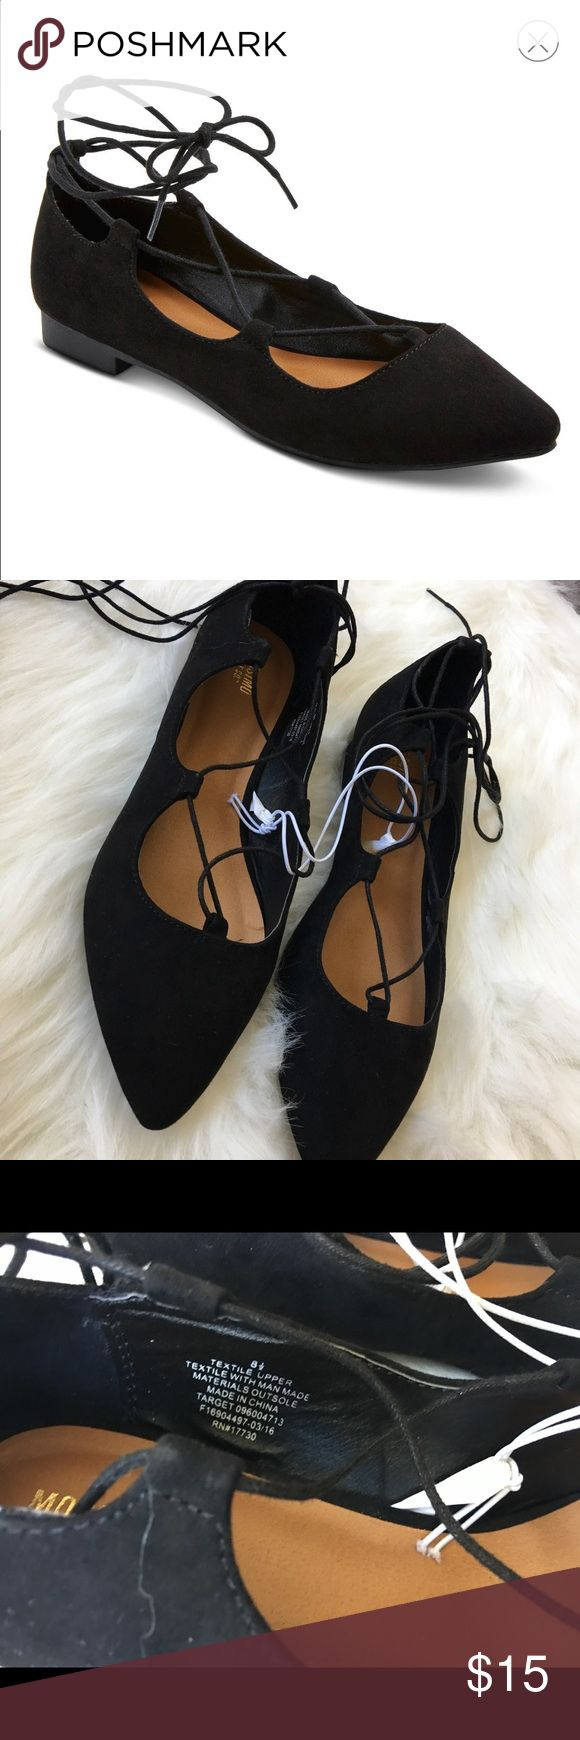 🎀 Black Lace-up Pointed Ballet Flat NWT NWT. Classic pointed Ballet flat with lace up ankle detail. Mossimo Supply Co Shoes Flats & Loafers